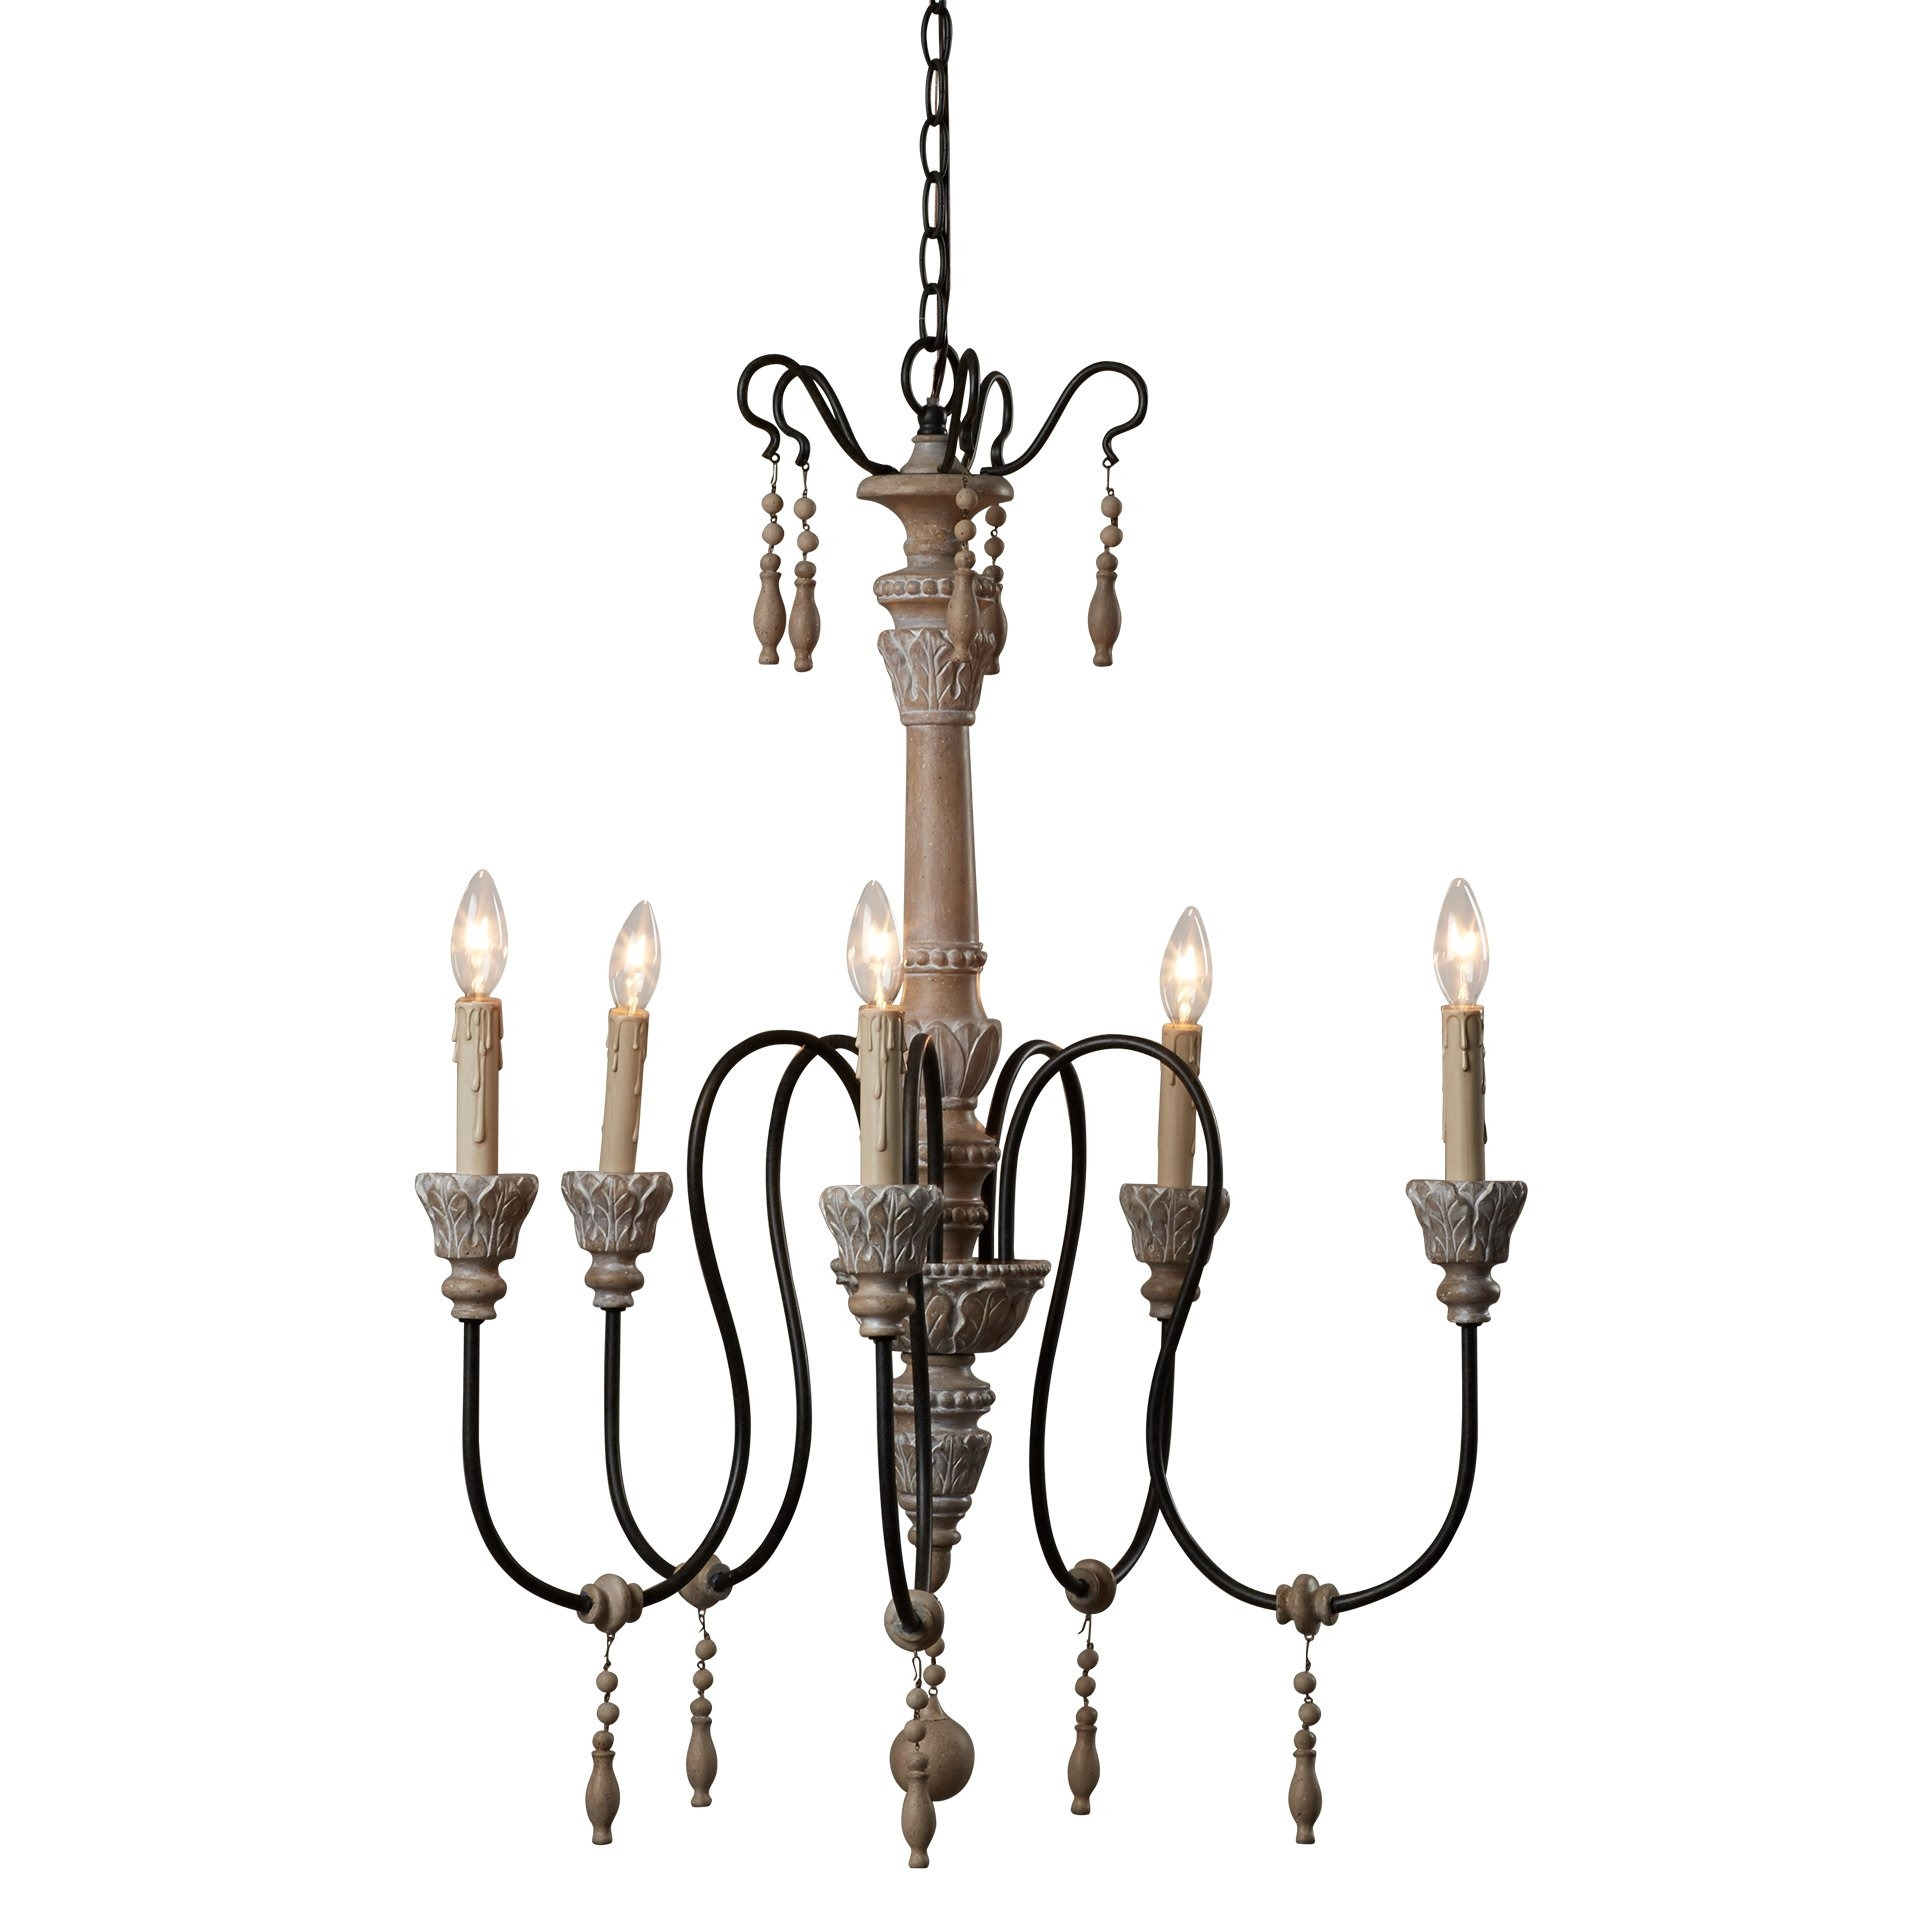 Candle Chandeliers Youll Love Wayfair Inside Candle Chandelier (Image 4 of 15)